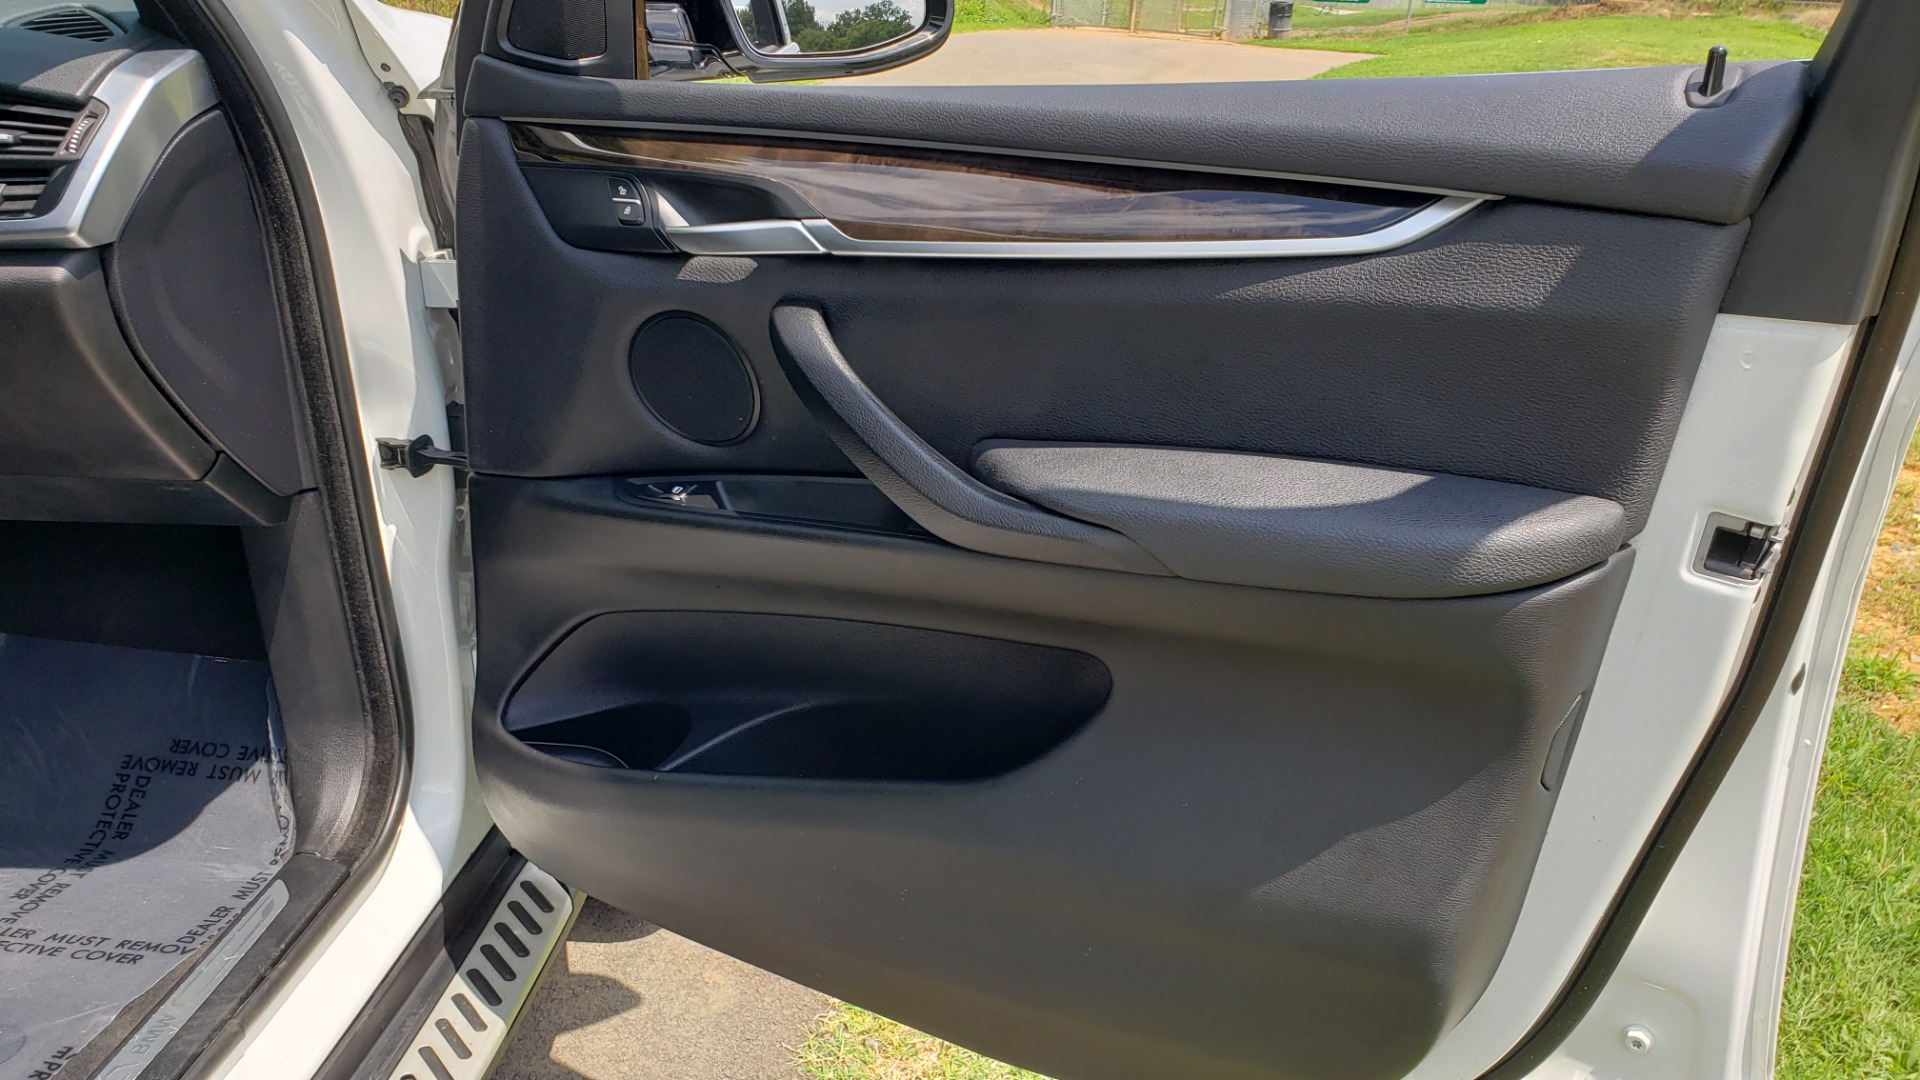 Used 2017 BMW X5 XDRIVE35I / NAV / SUNROOF / RUNNING BOARDS / REARVIEW for sale $33,995 at Formula Imports in Charlotte NC 28227 68